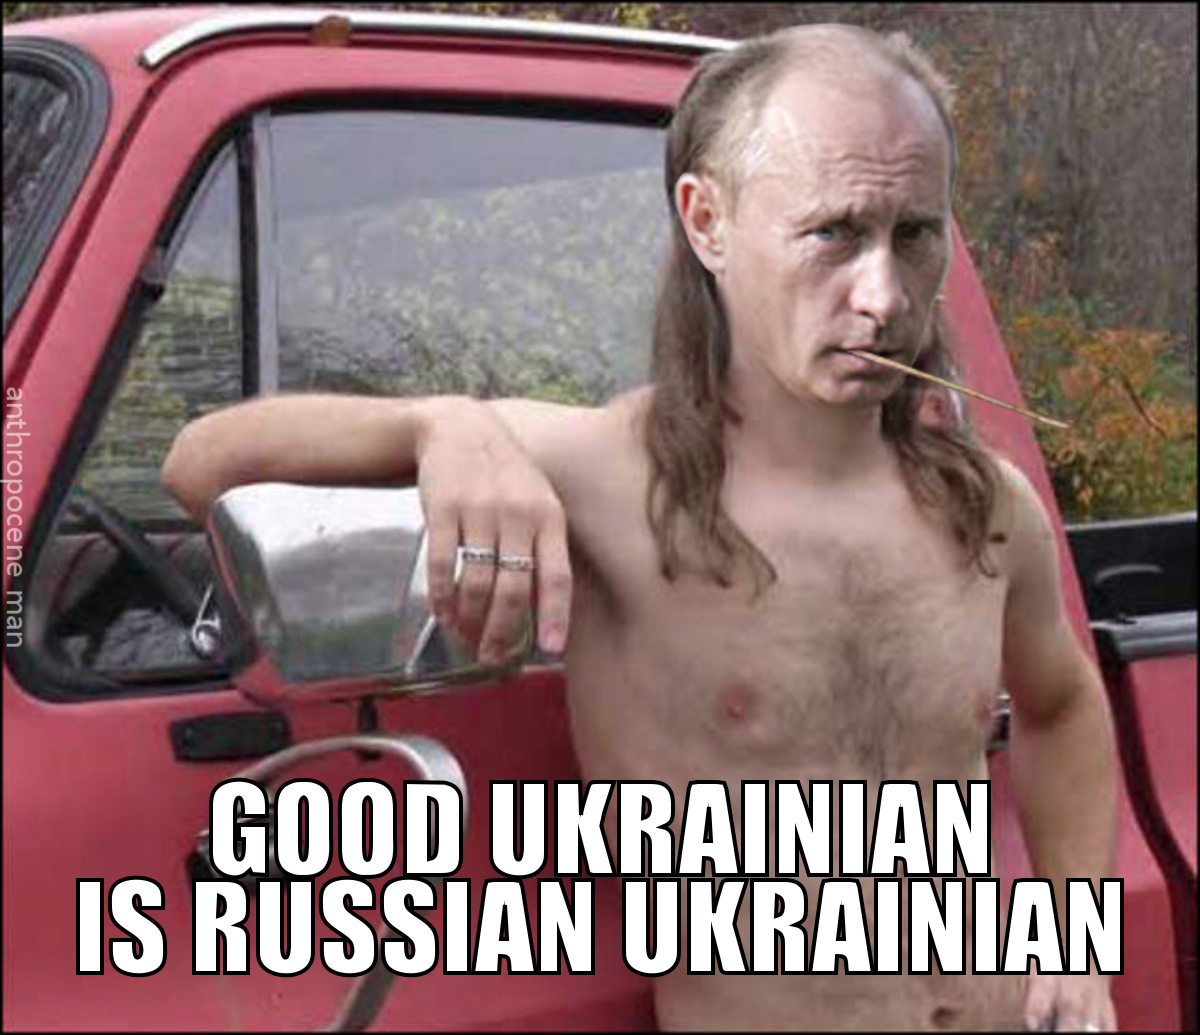 a11 almost politically correct putin redneck russian anti meme law